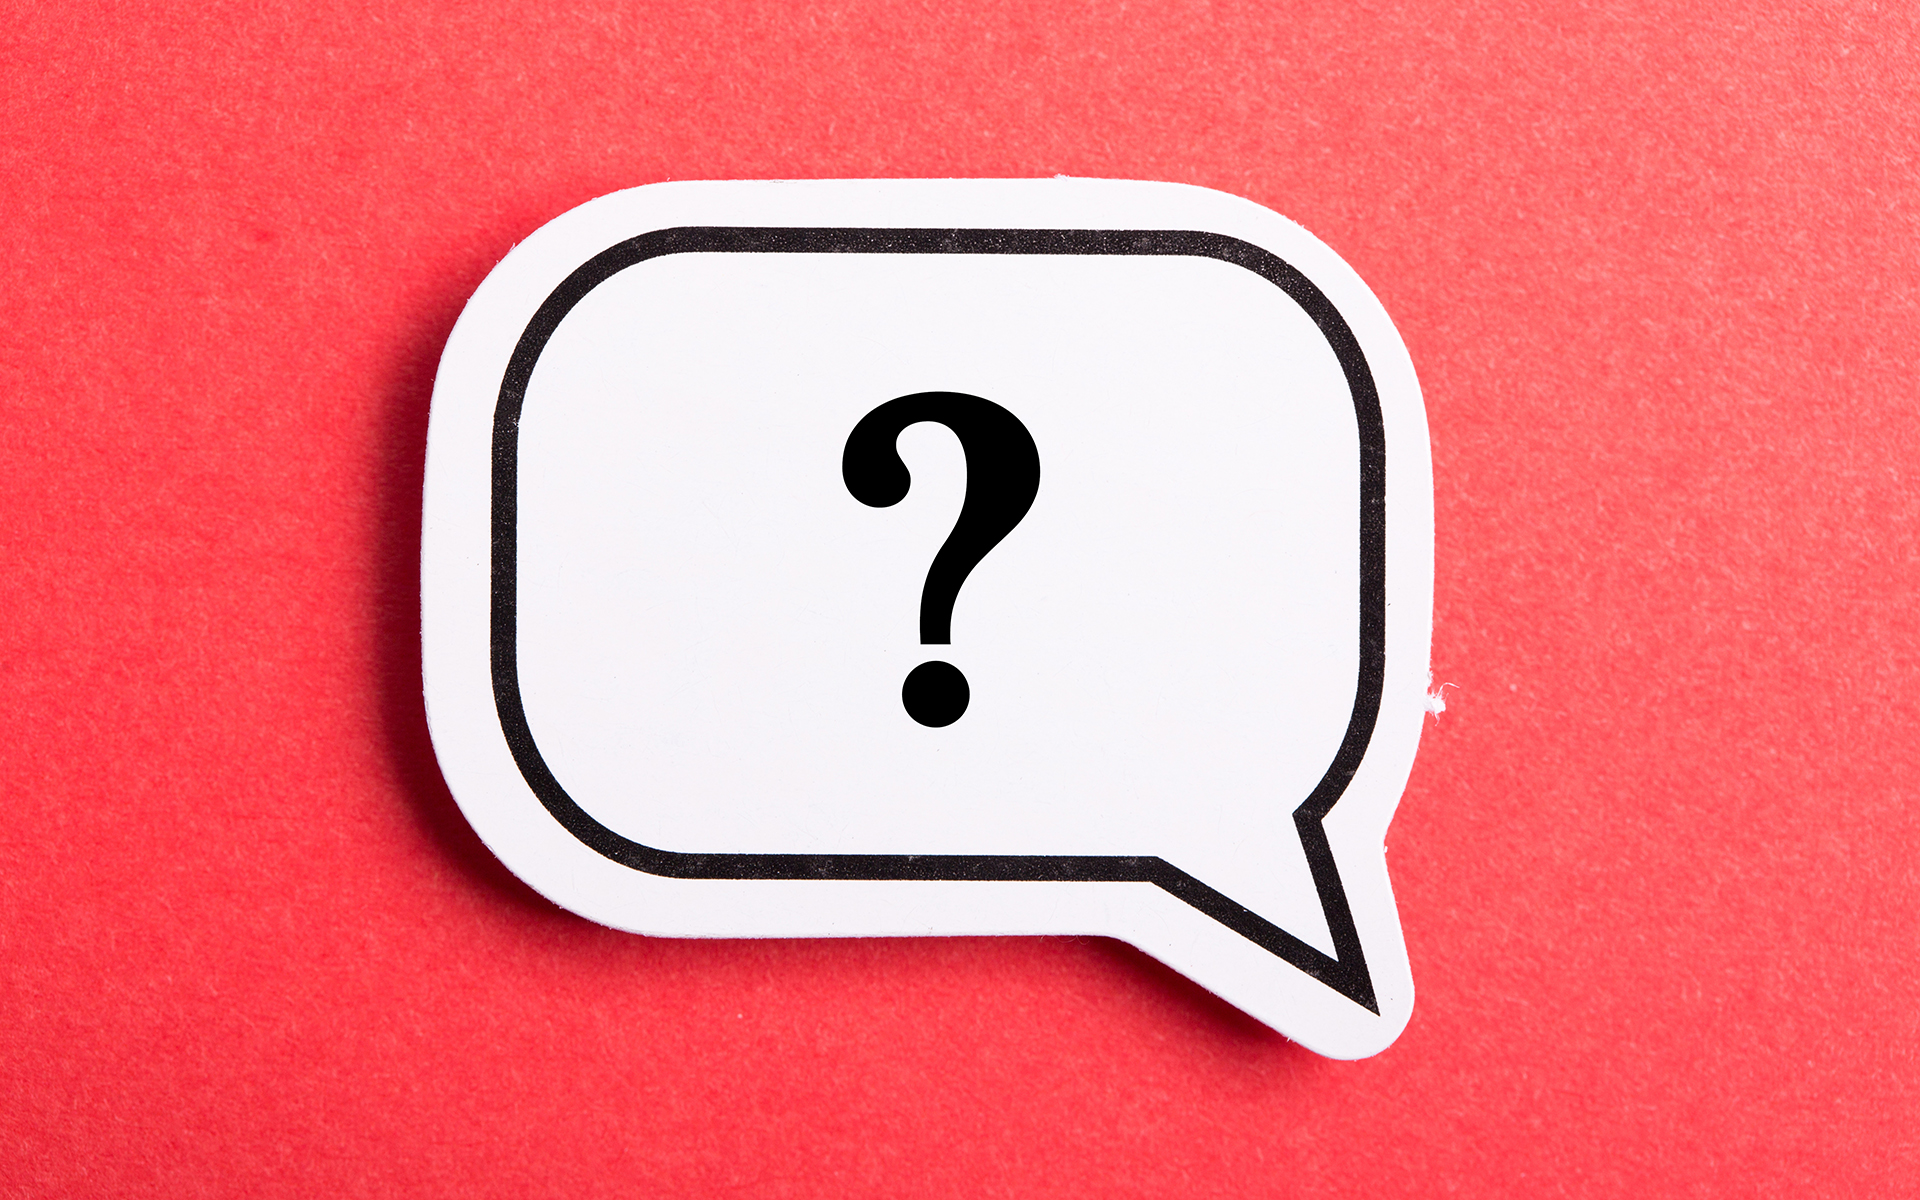 Daily questions for social distancing - Question Mark Speech Bubble Isolated